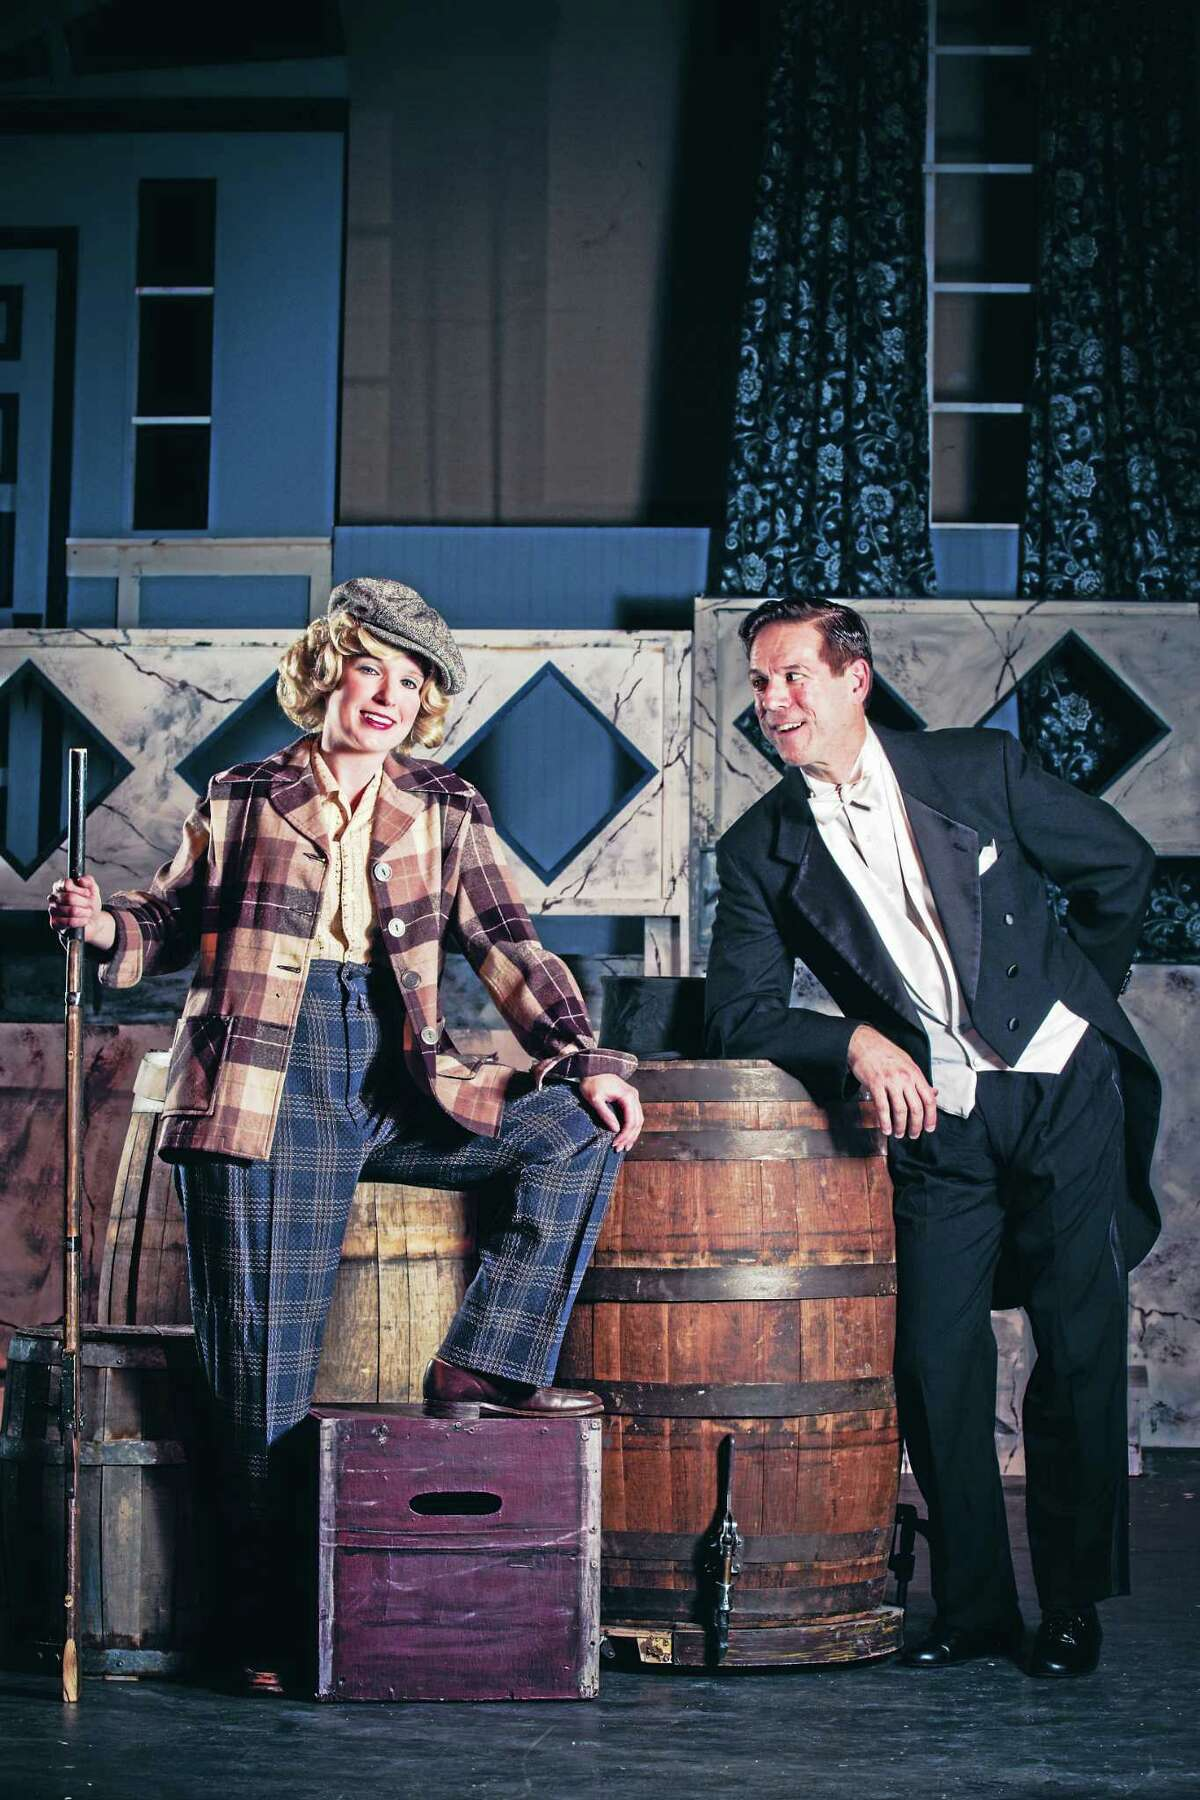 Photo by Luke Haughwout/Mandi MartiniMarcia Maslo as Billie Bendix and Rick Fountain as Jimmy Winter in a scene from the Warner Stage Company's production of